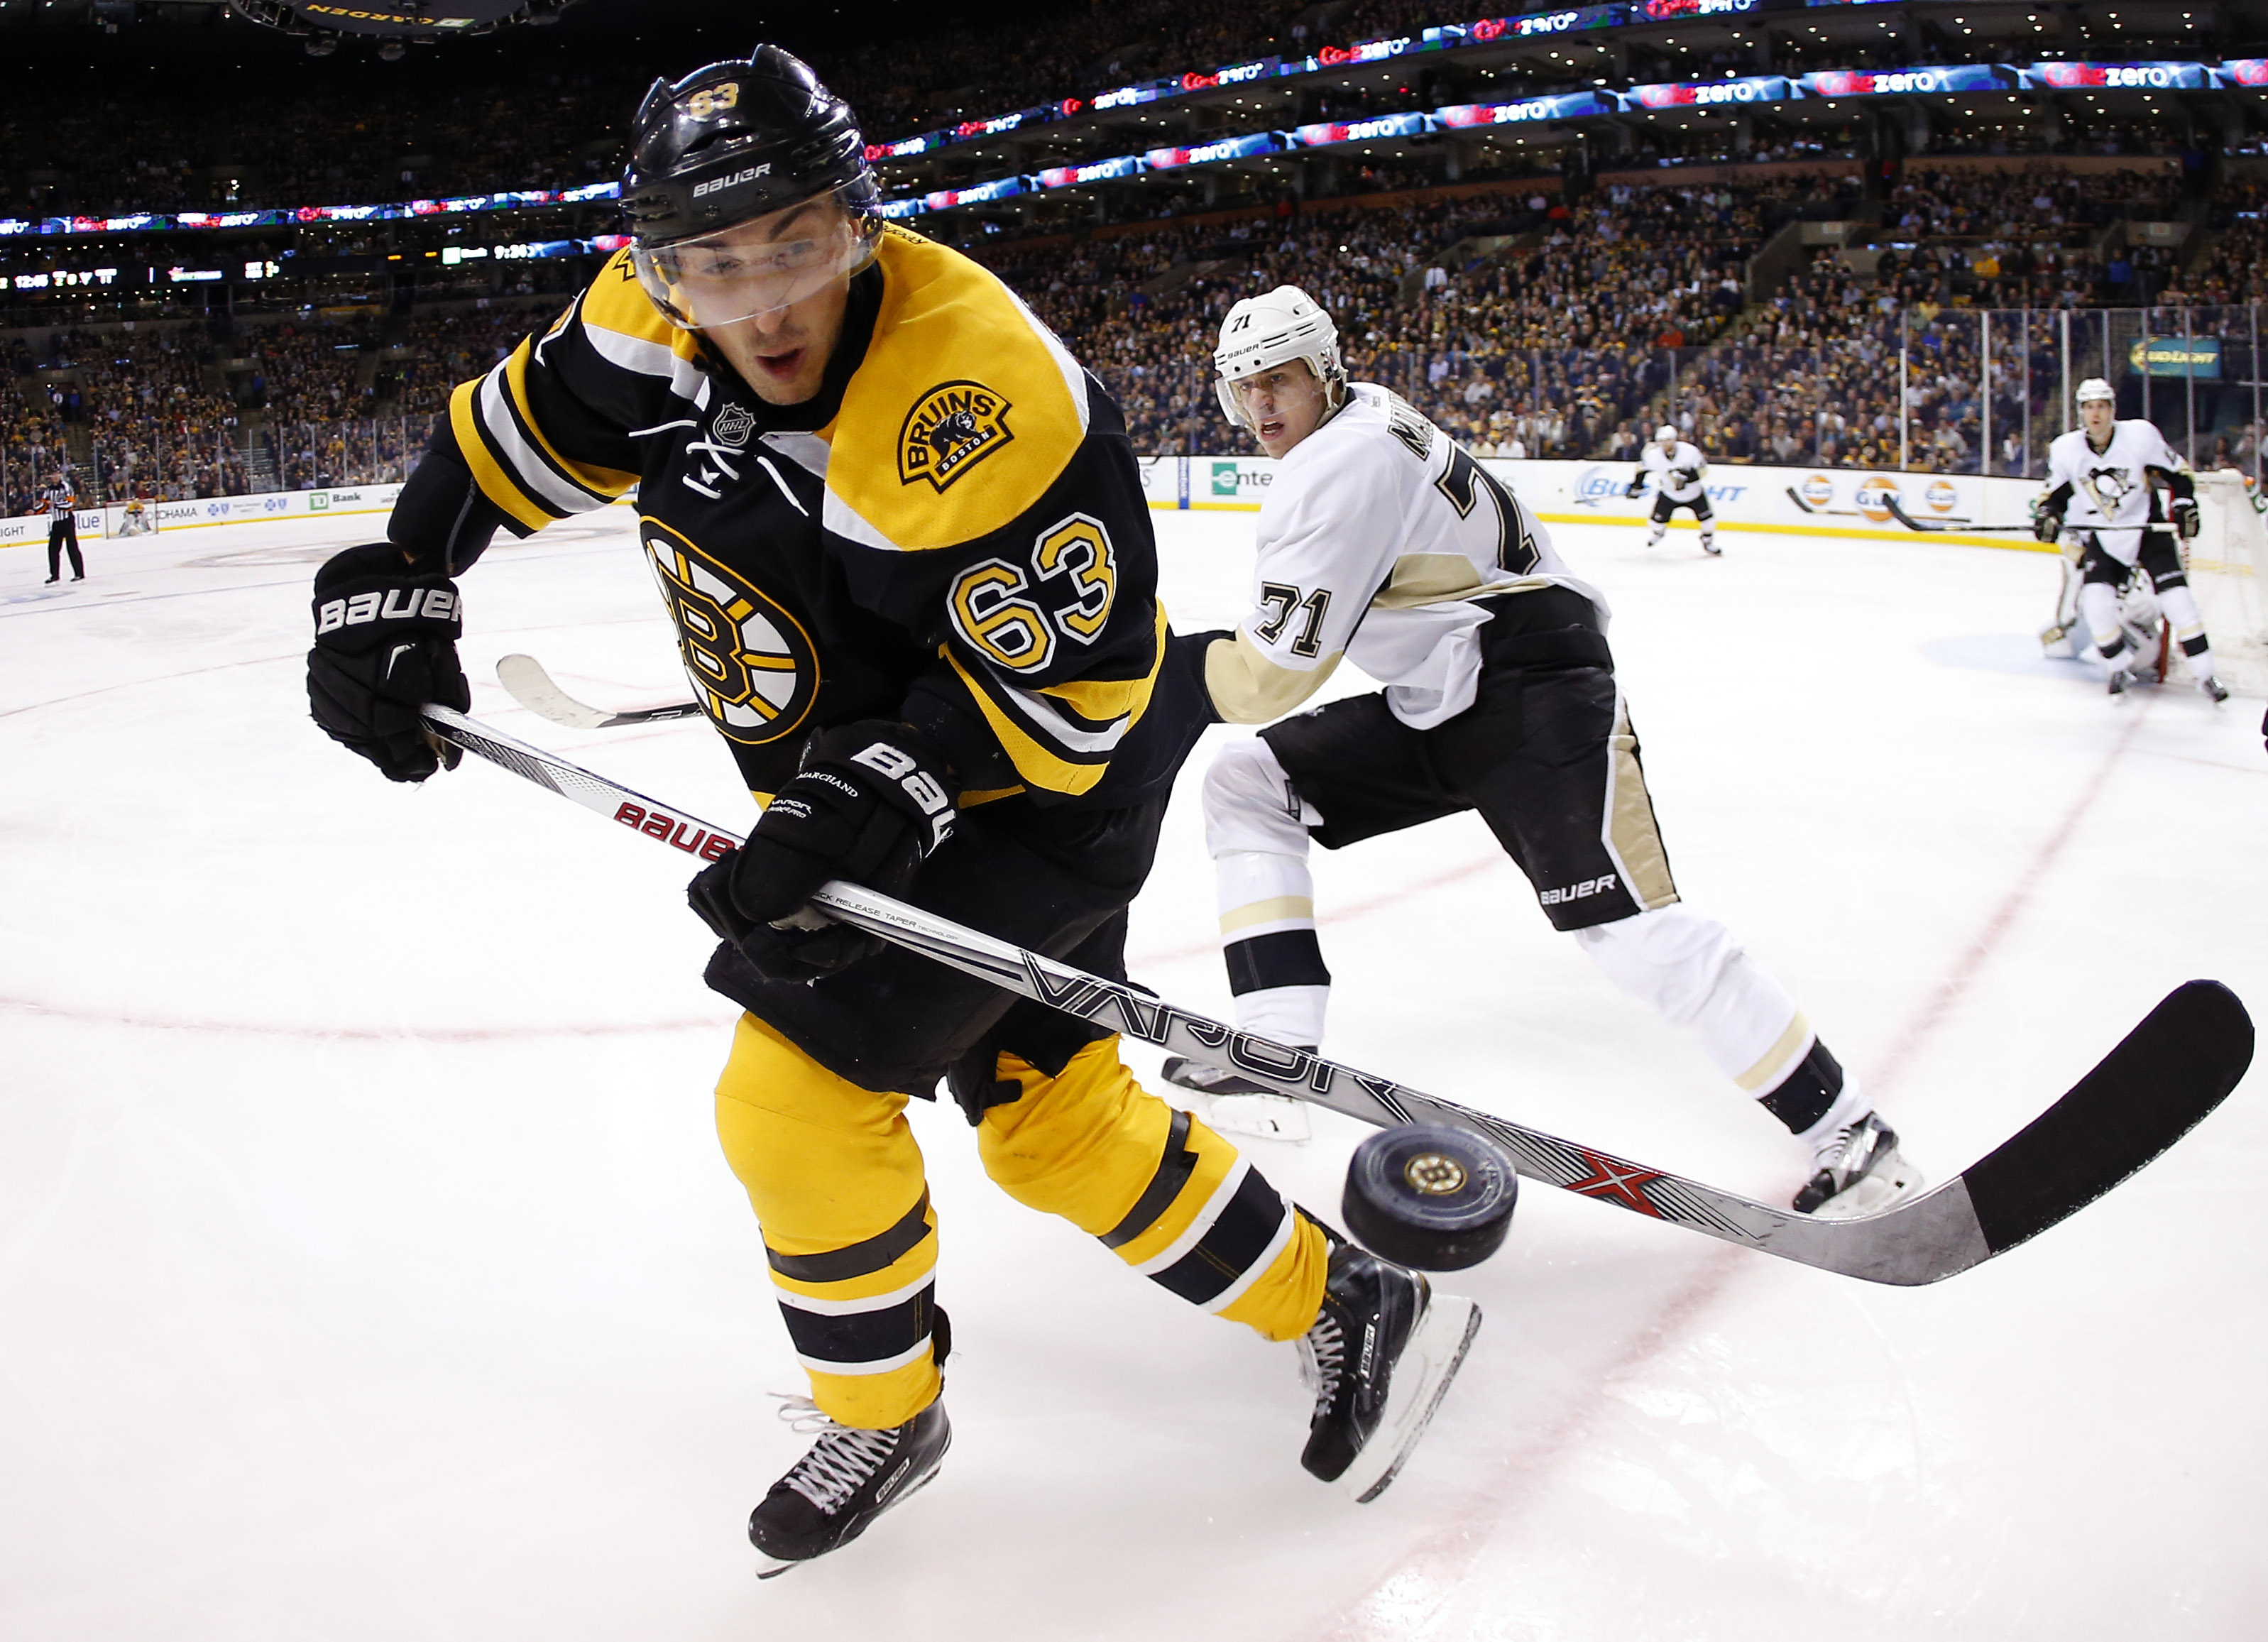 Boston Bruins' Brad Marchand eyes a loose puck in front of Pittsburgh Penguins' Evgeni Malkin during the third period of the Boston Bruins 3-0 win over the Pittsburgh Penguins in an NHL hockey game in Boston Wednesday, Dec. 16, 2015. (AP Photo/Winslow Tow